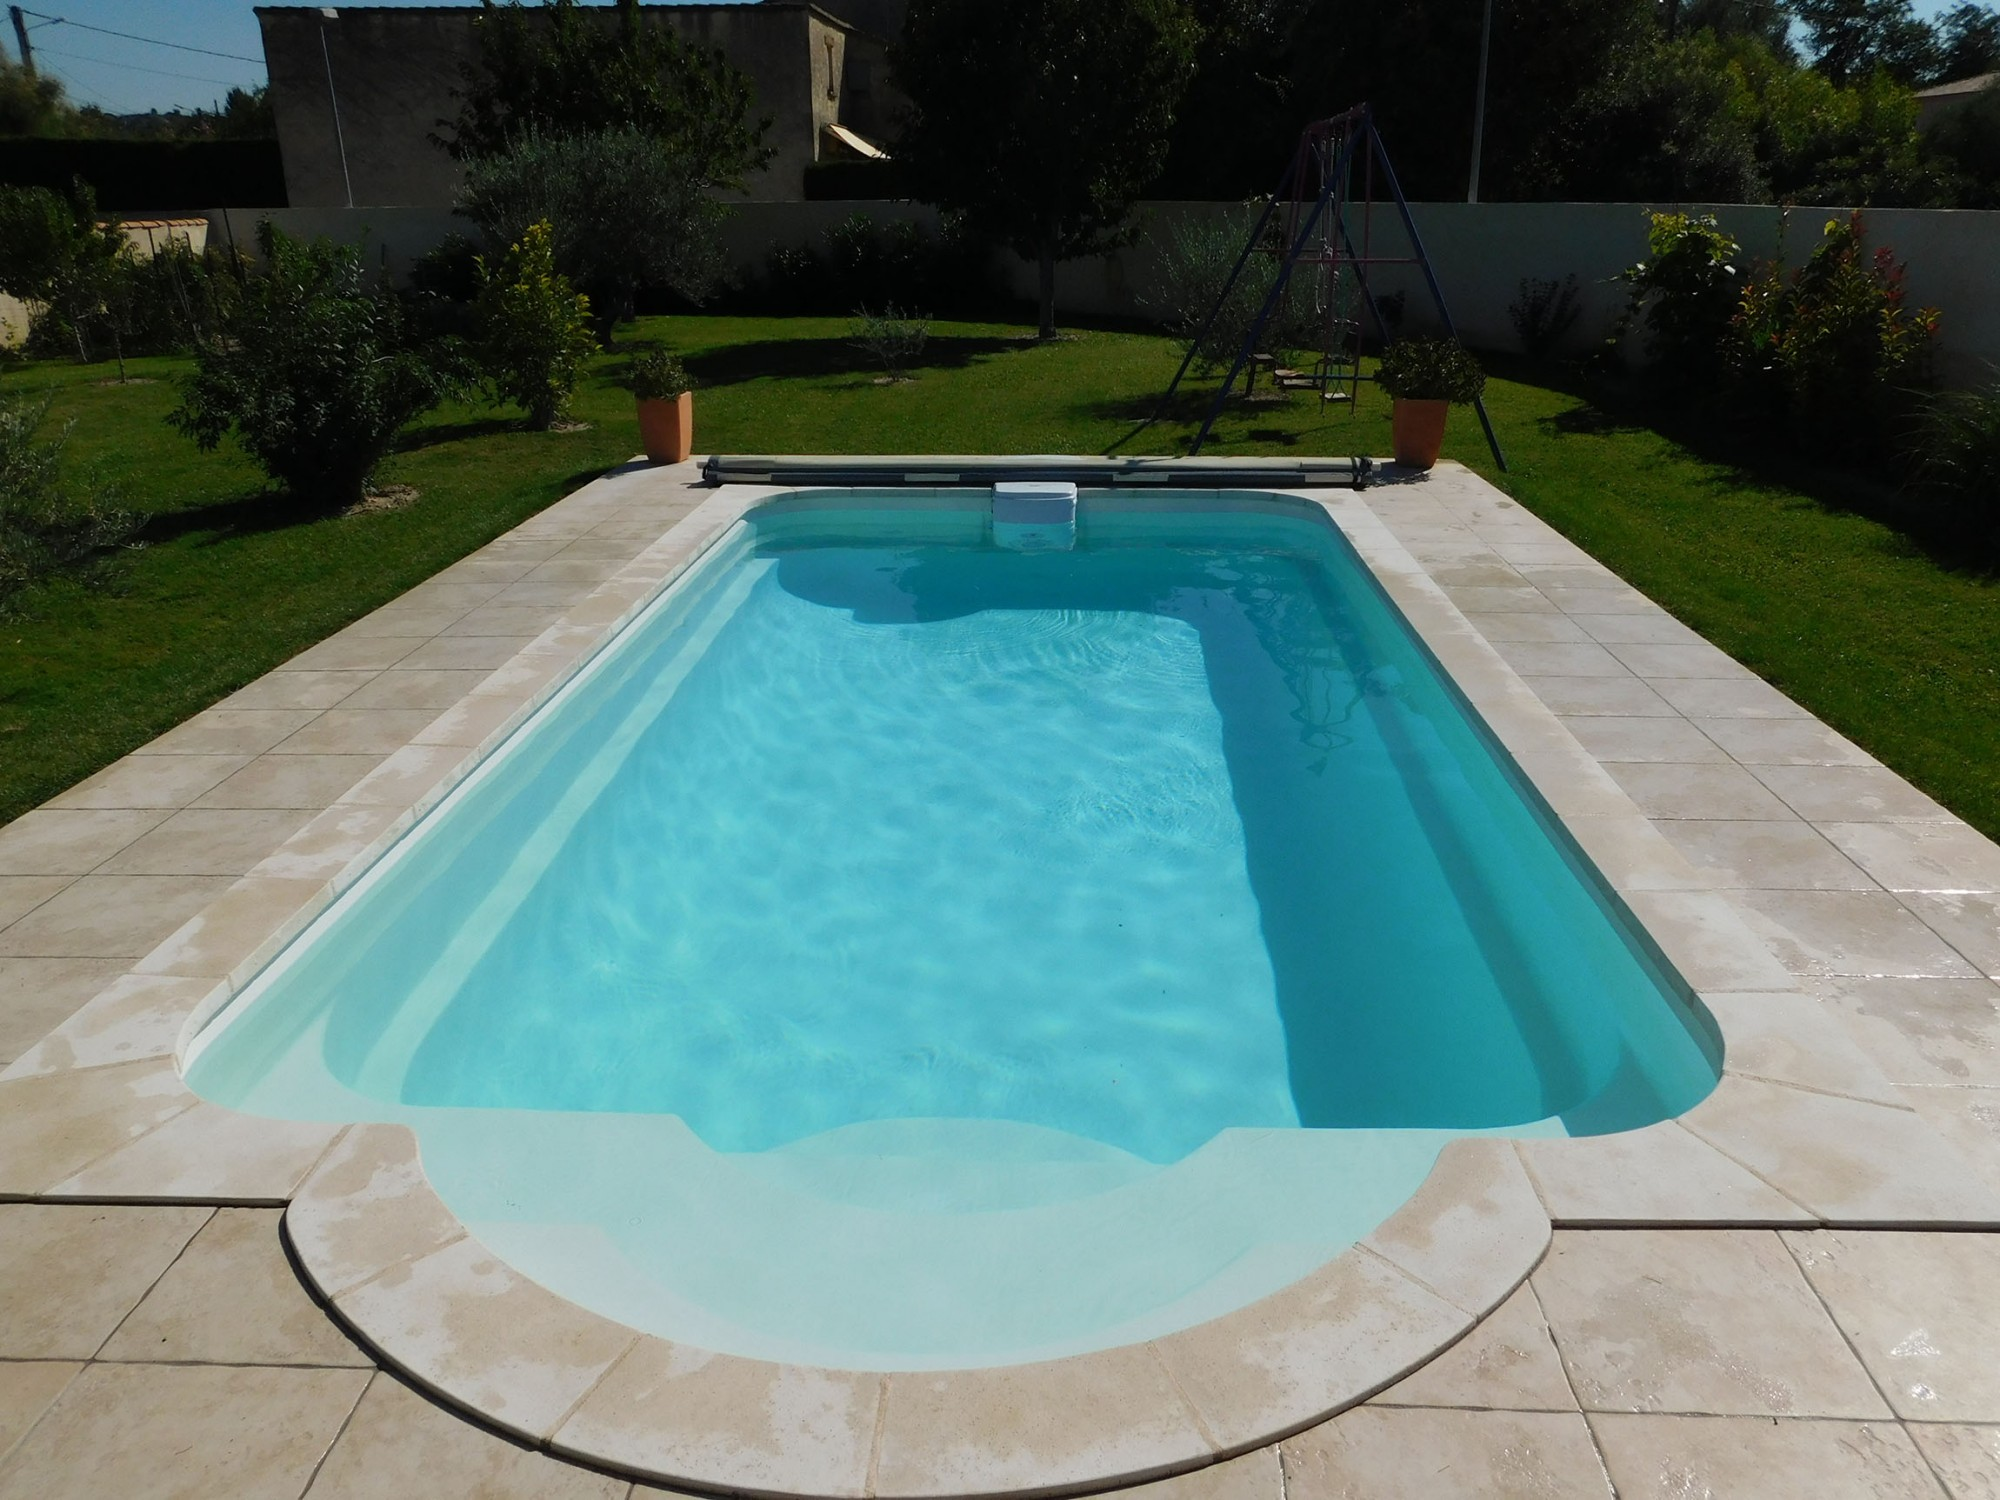 mod le piscine coque rectangulaire 7x4 dans le var installation piscine marseille france. Black Bedroom Furniture Sets. Home Design Ideas